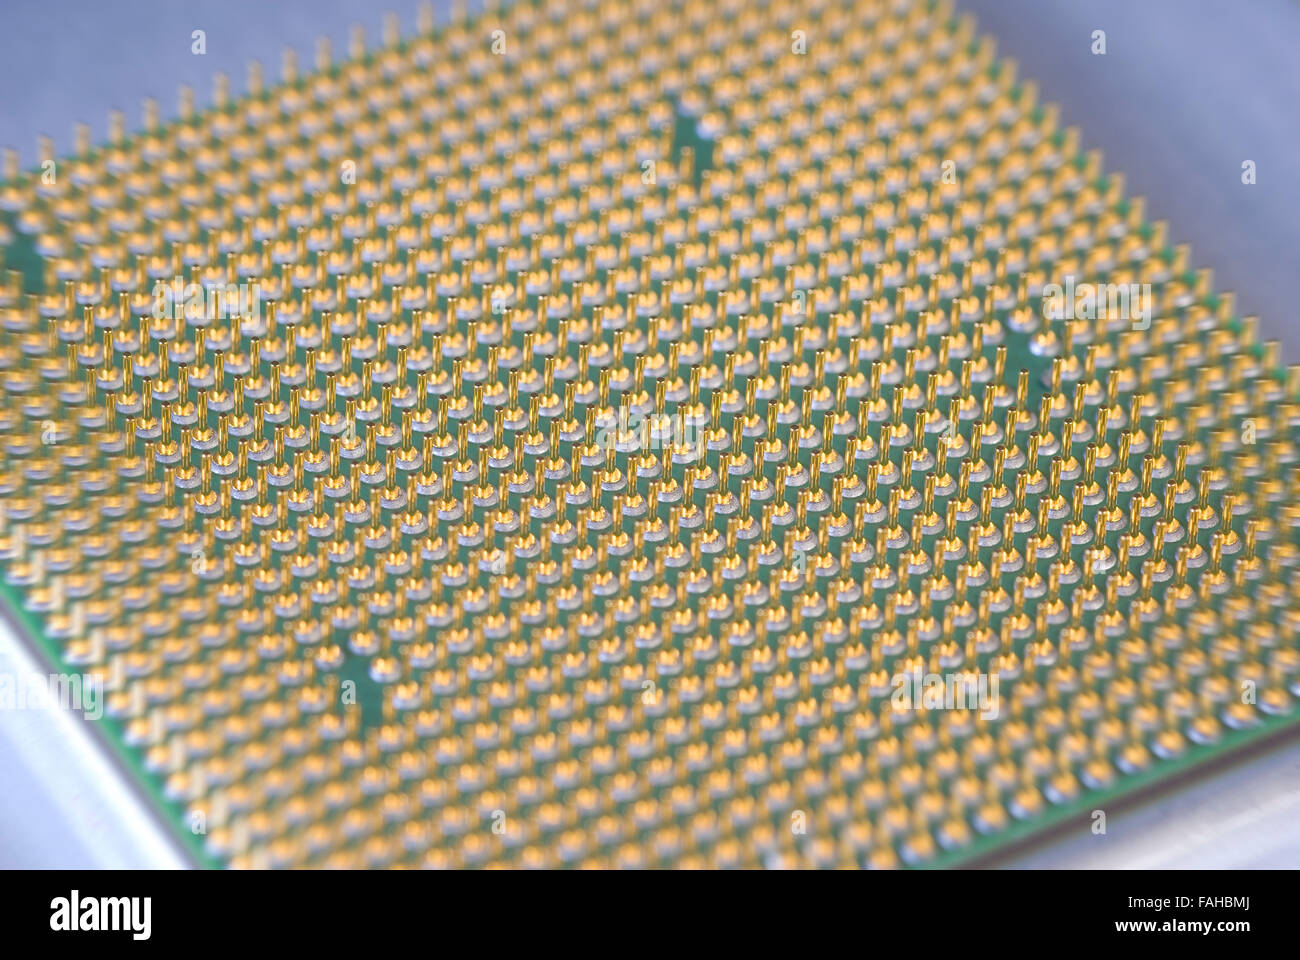 Gold Contacts on Computer CPU Chip - Stock Image